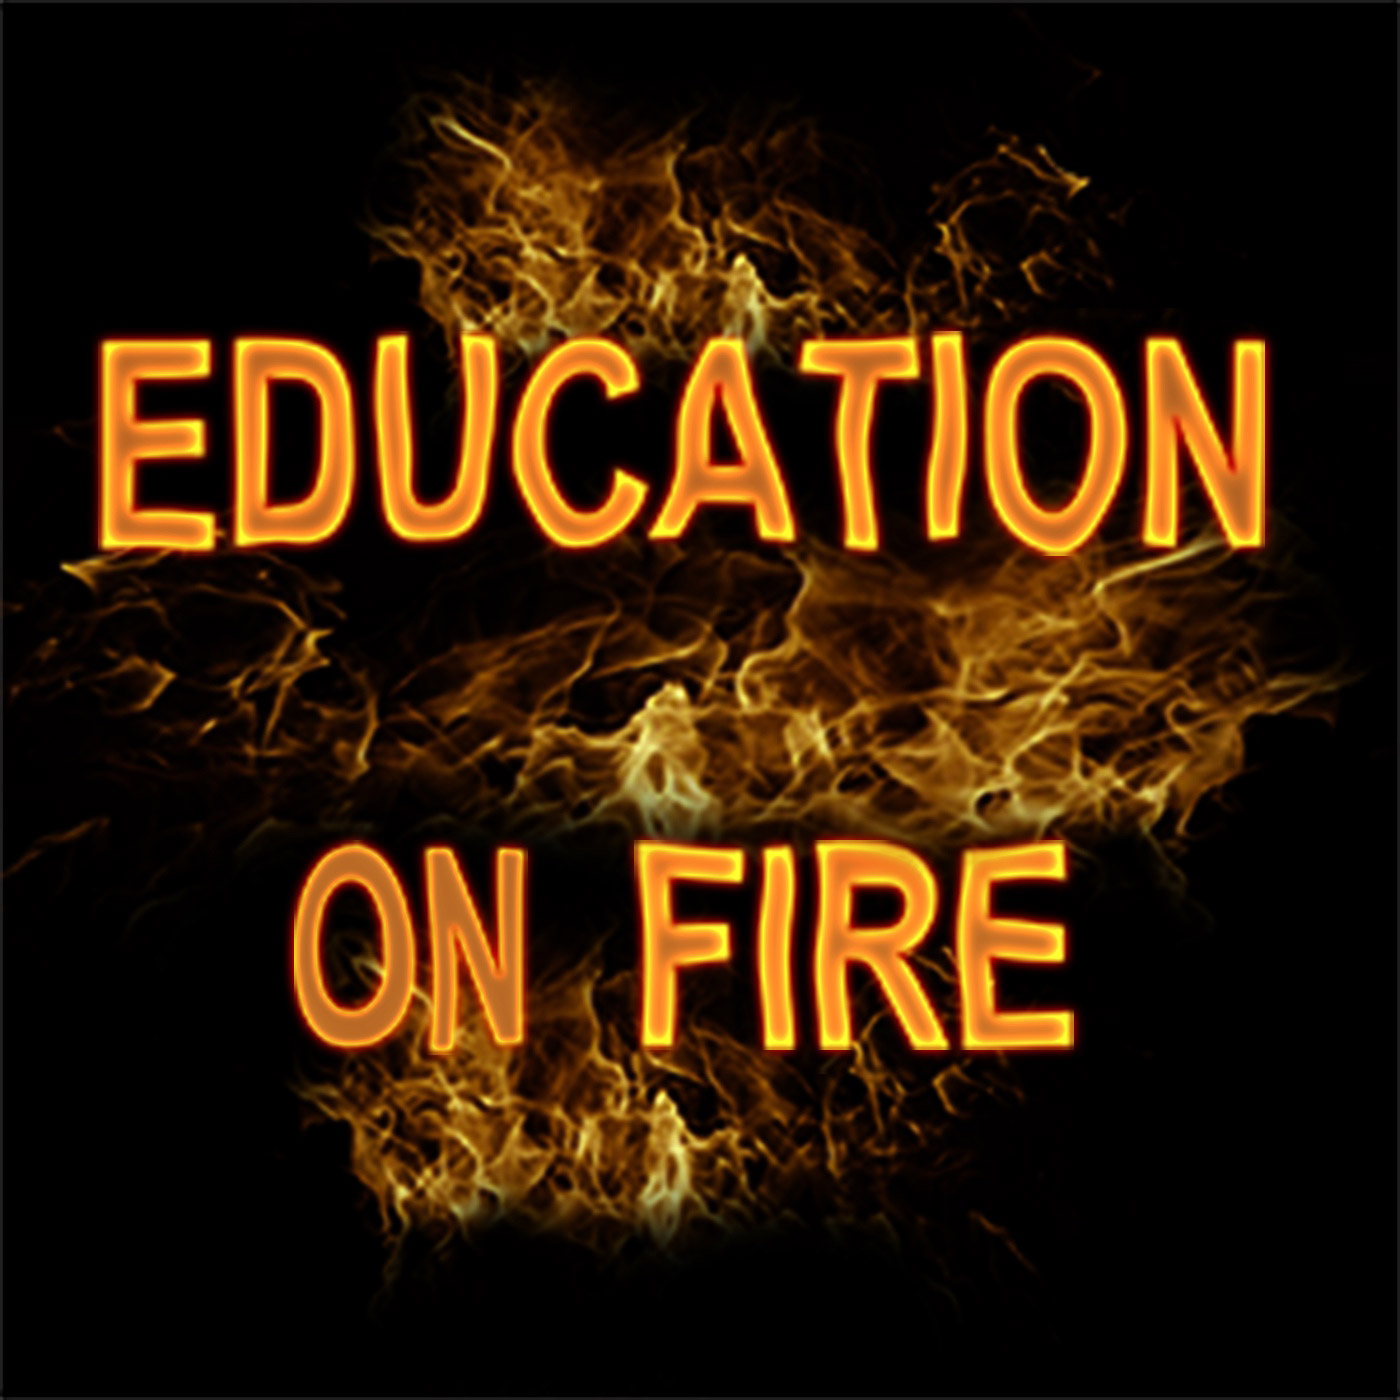 Education On Fire - Sharing creative and inspiring learning in our schools